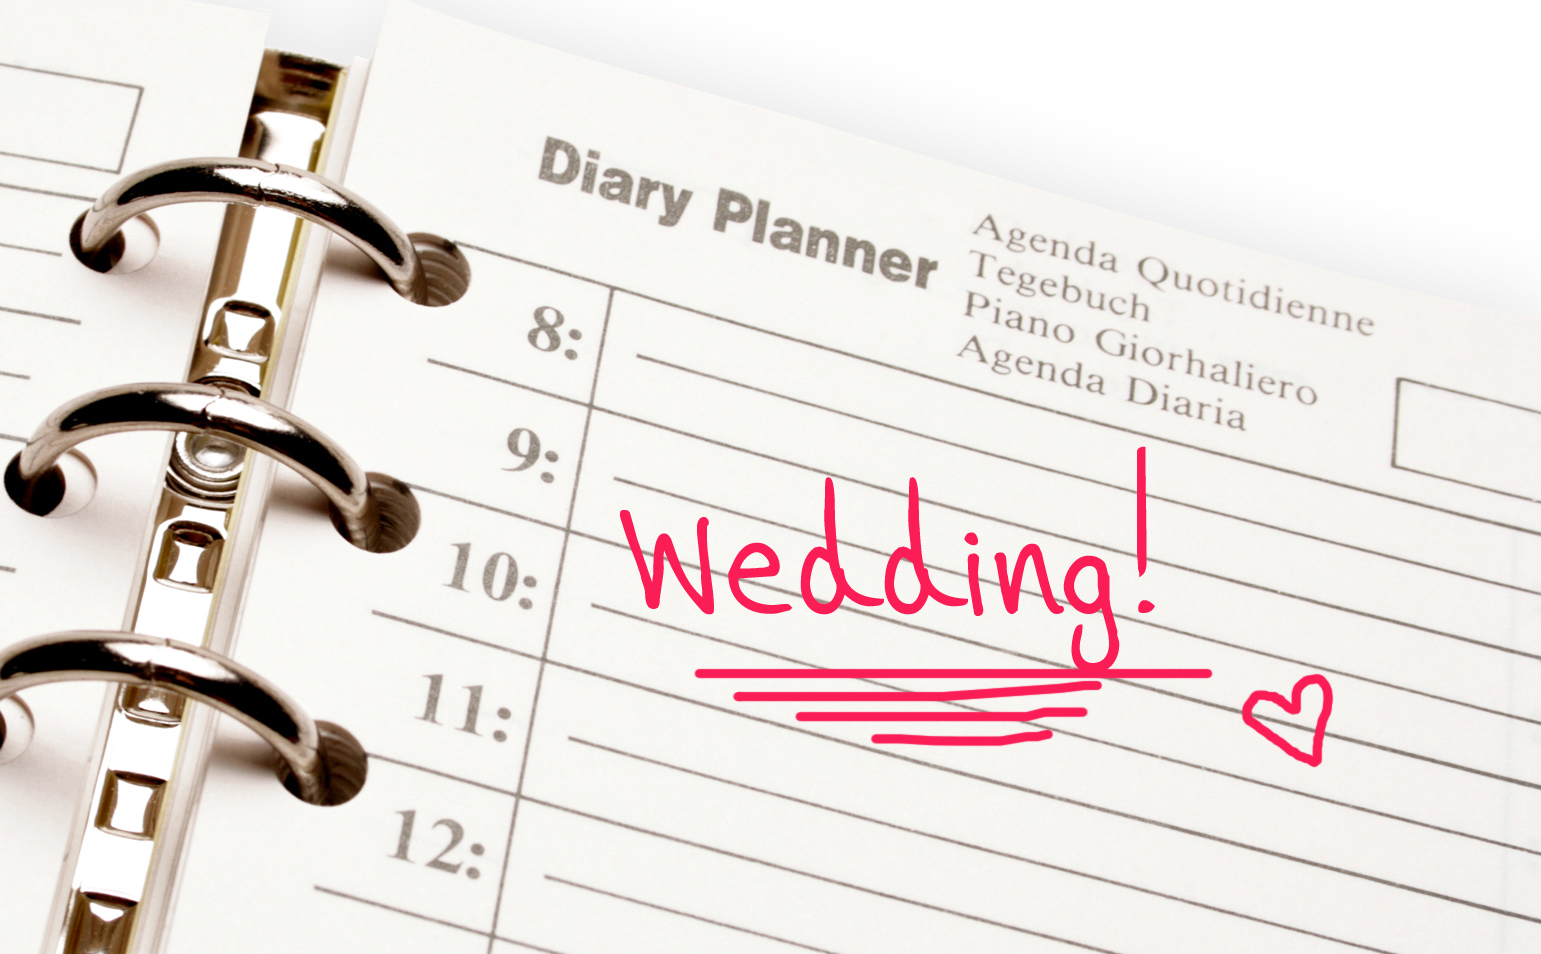 Wedding planning stress quotes quotesgram for What to know about planning a wedding